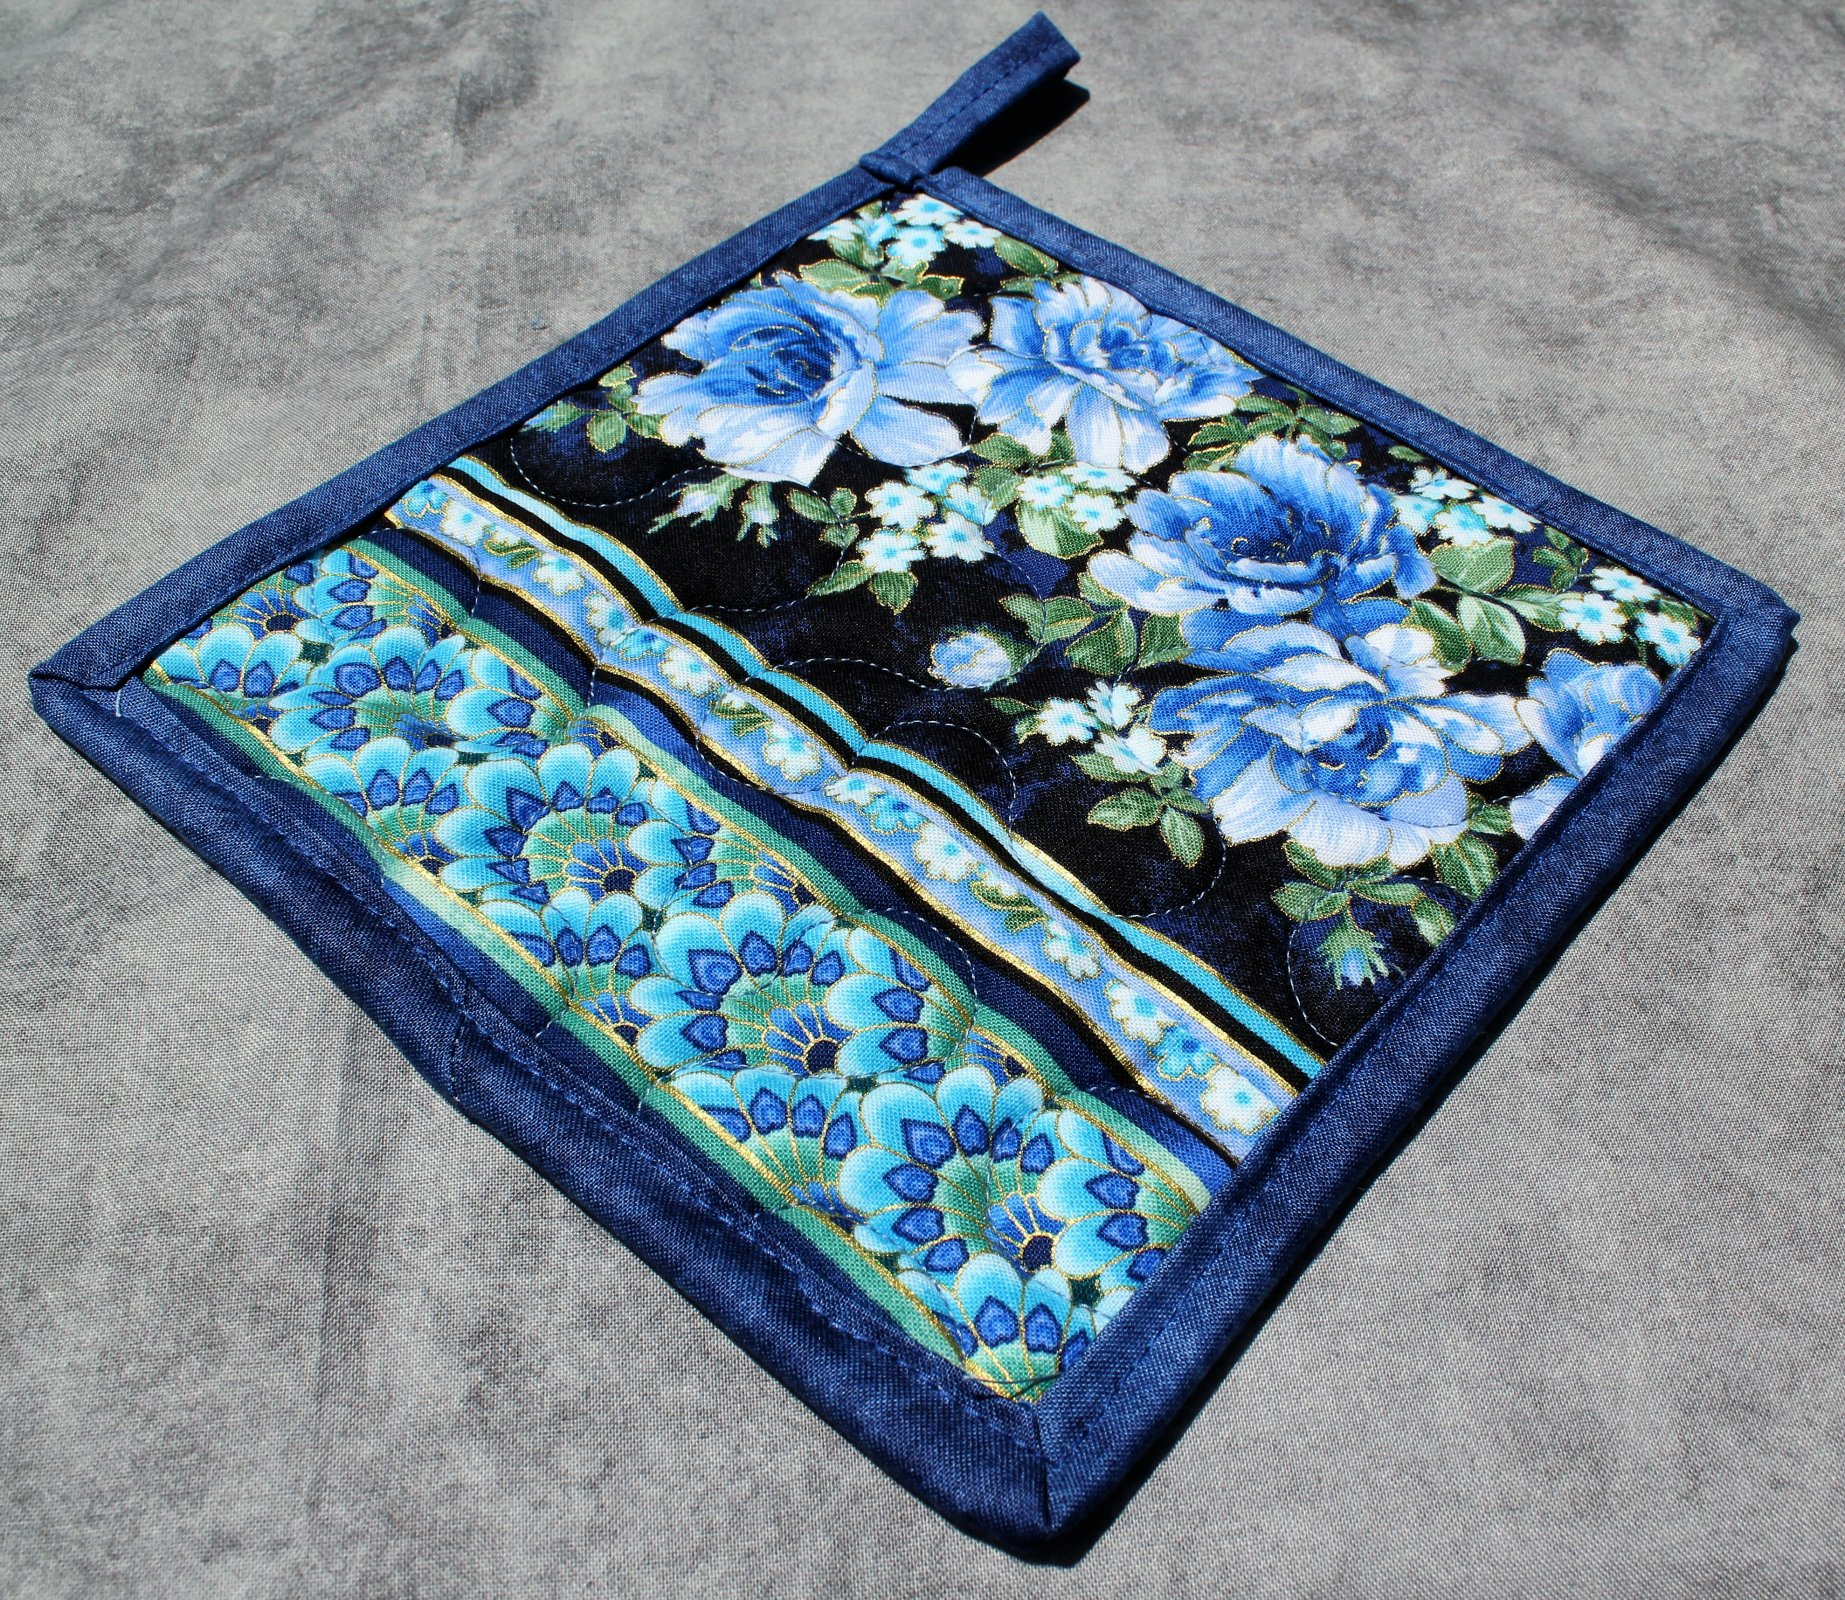 Single Blue/Green/White Roses and Florals Potholder